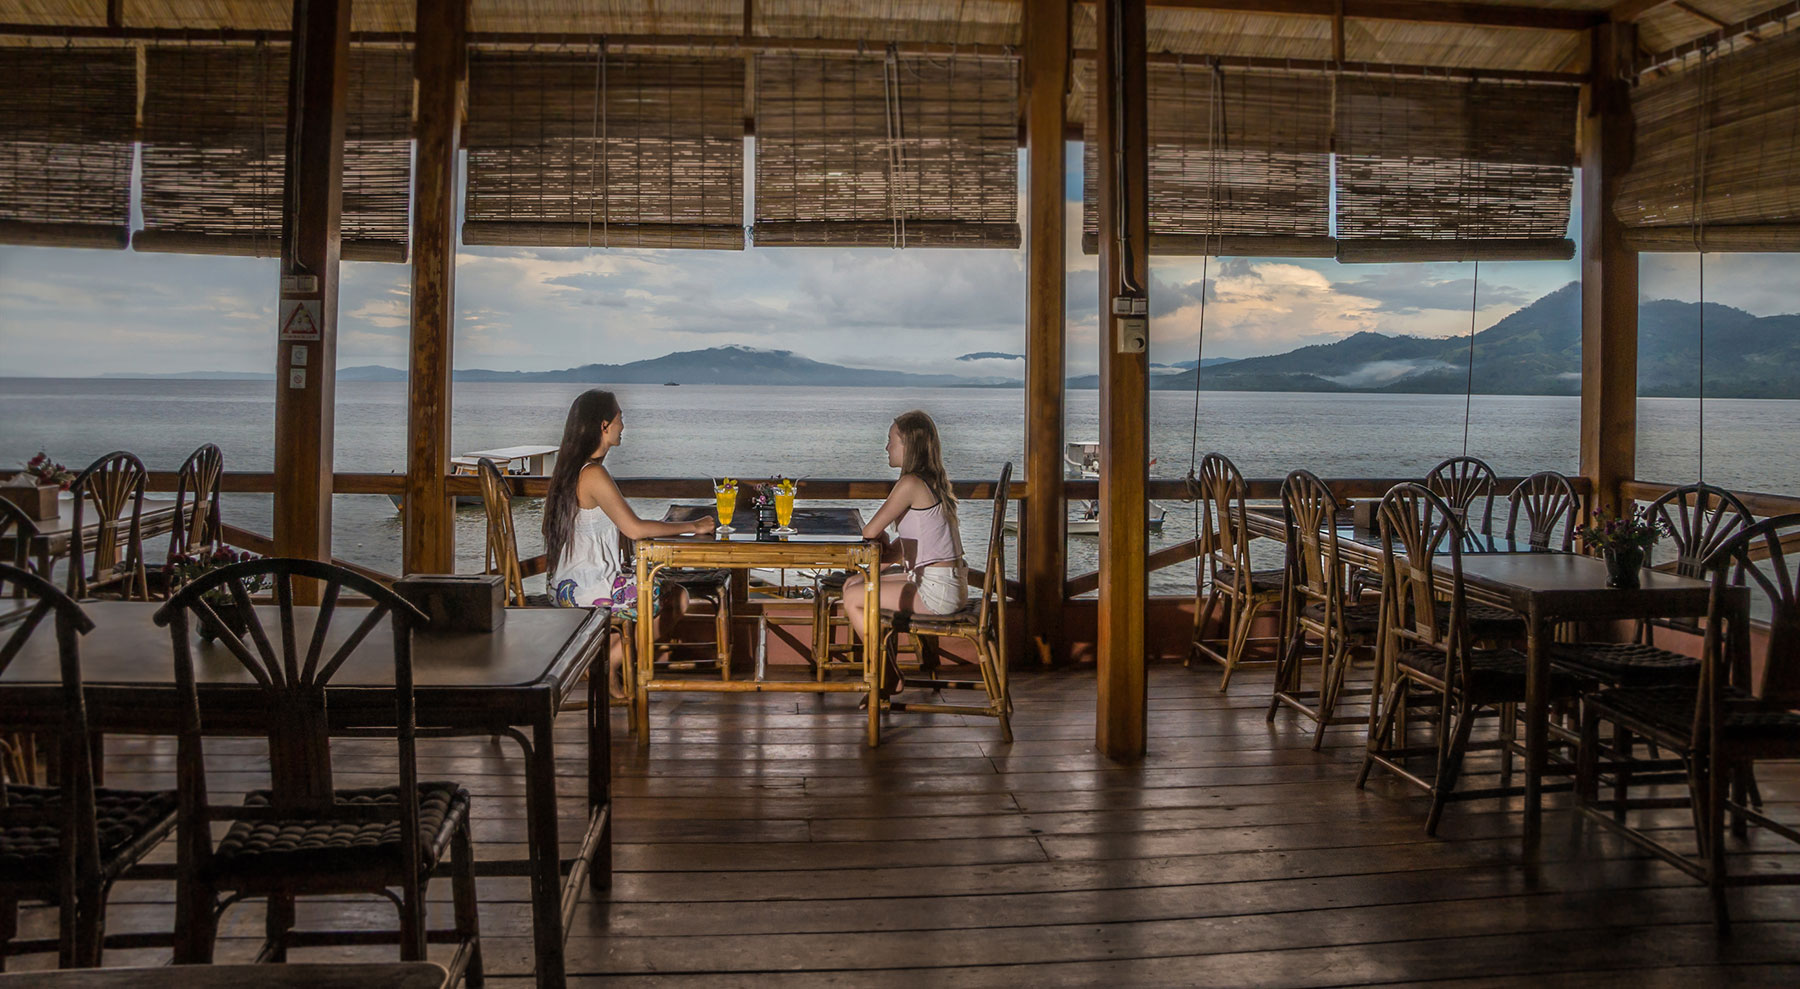 Indonesia, Manado, Bunaken Island, Seabreeze Resort, Restaurant, Cocktails with Bay View